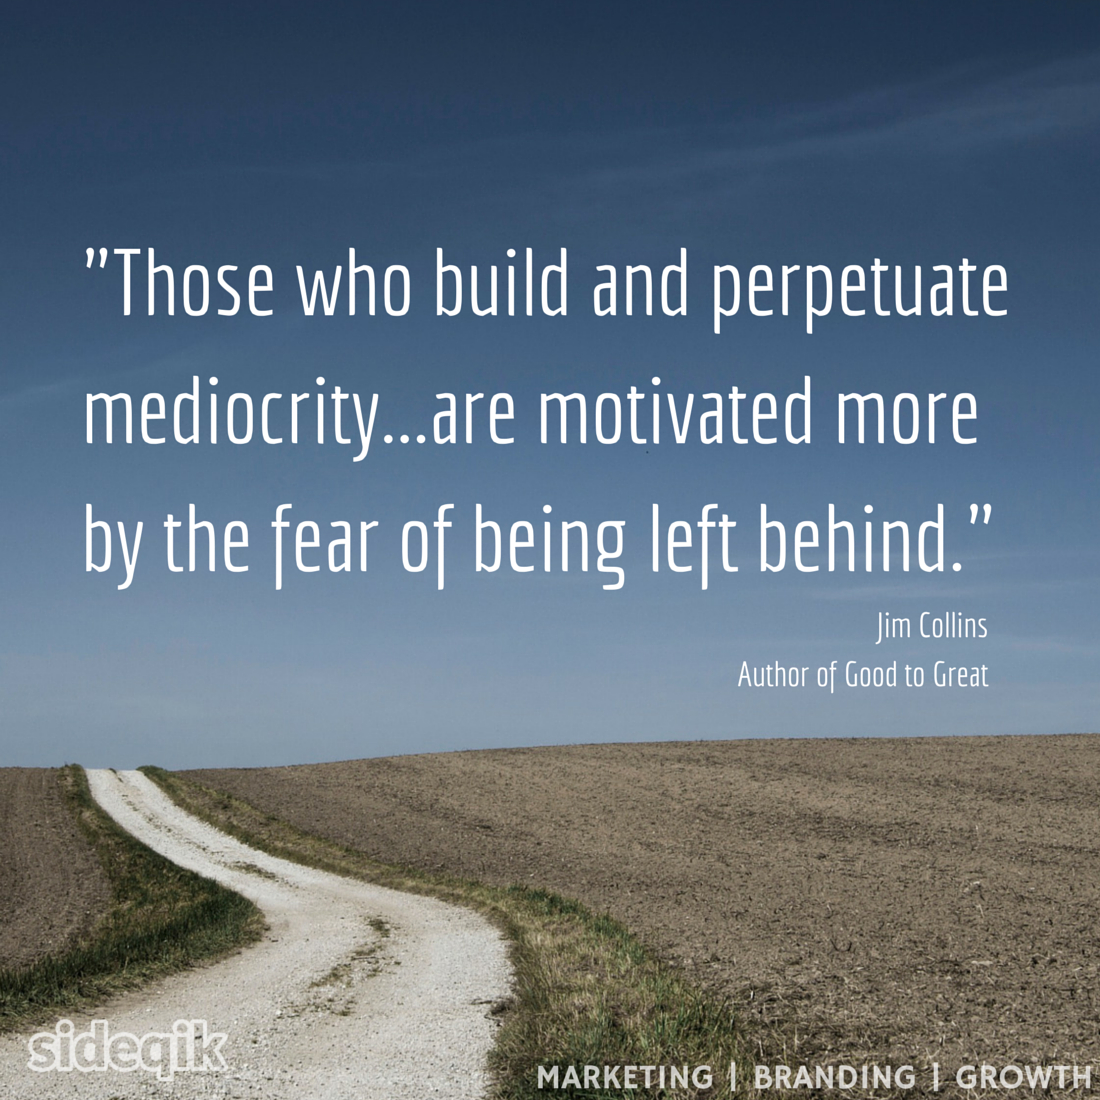 Good To Great Quotes Those Who Build And Perpetuate Mediocrity.are Motivated More.